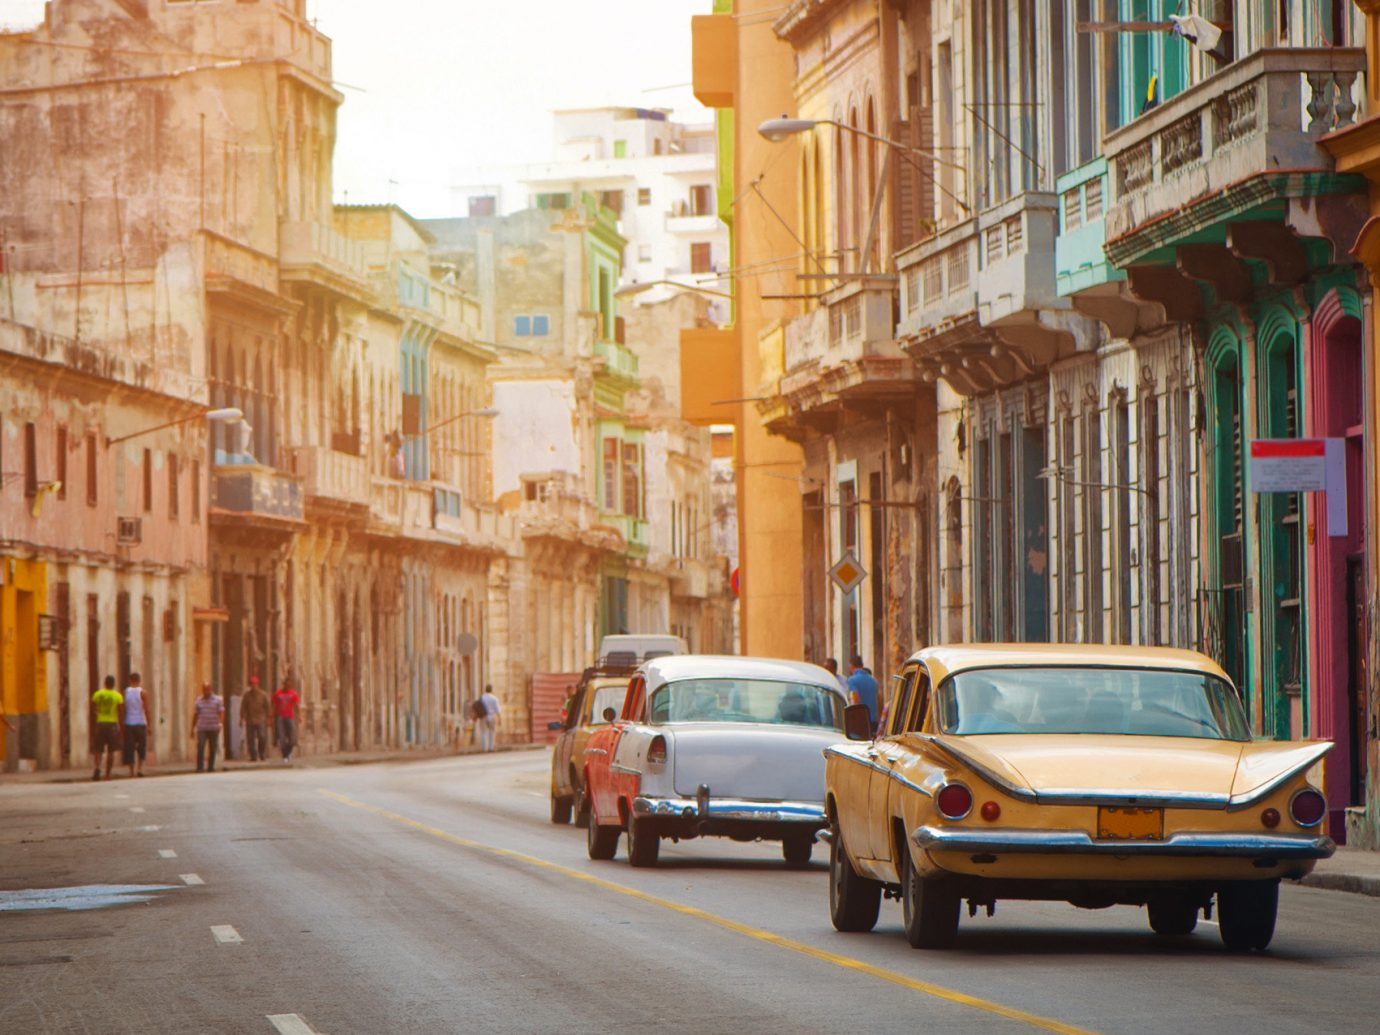 Colorful old cars on the street in Havana